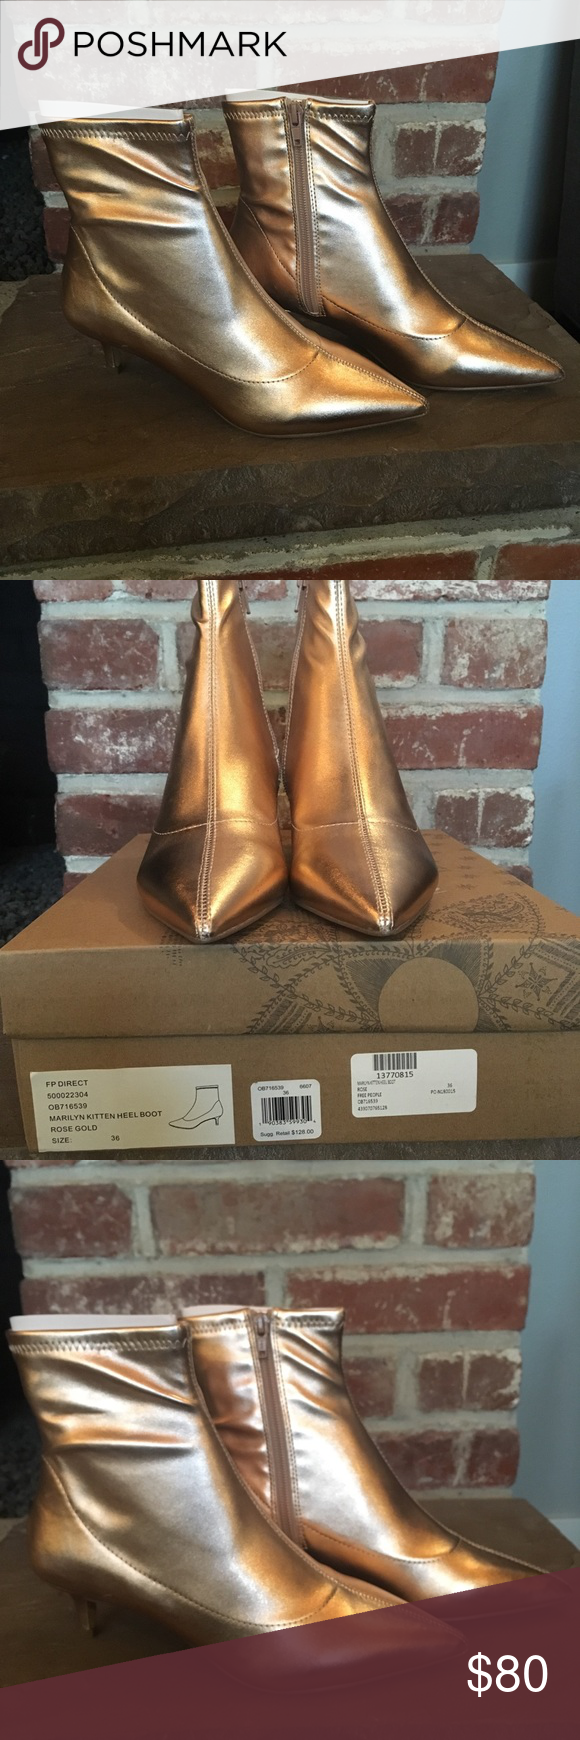 0c06a8b1aab Free People Gold Kitten Heel Booties (size 36) New in box. Never worn